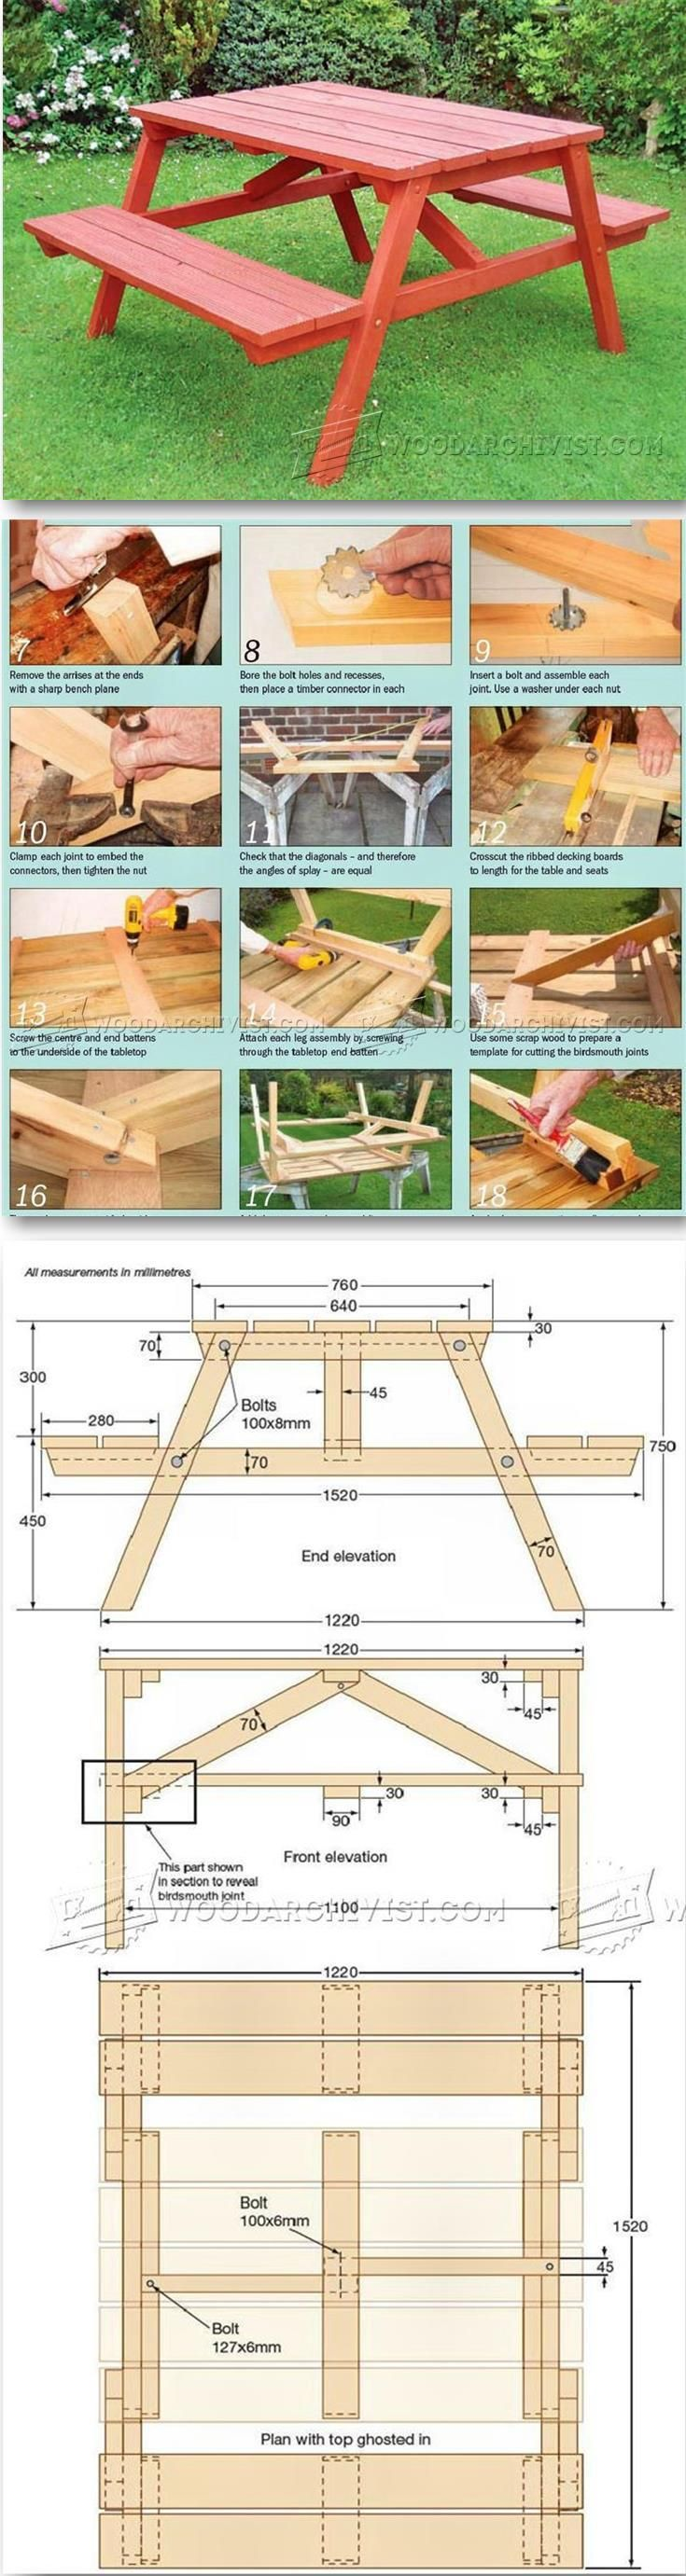 Garden Picnic Table Plans - Outdoor Furniture Plans & Projects | WoodArchivist.com